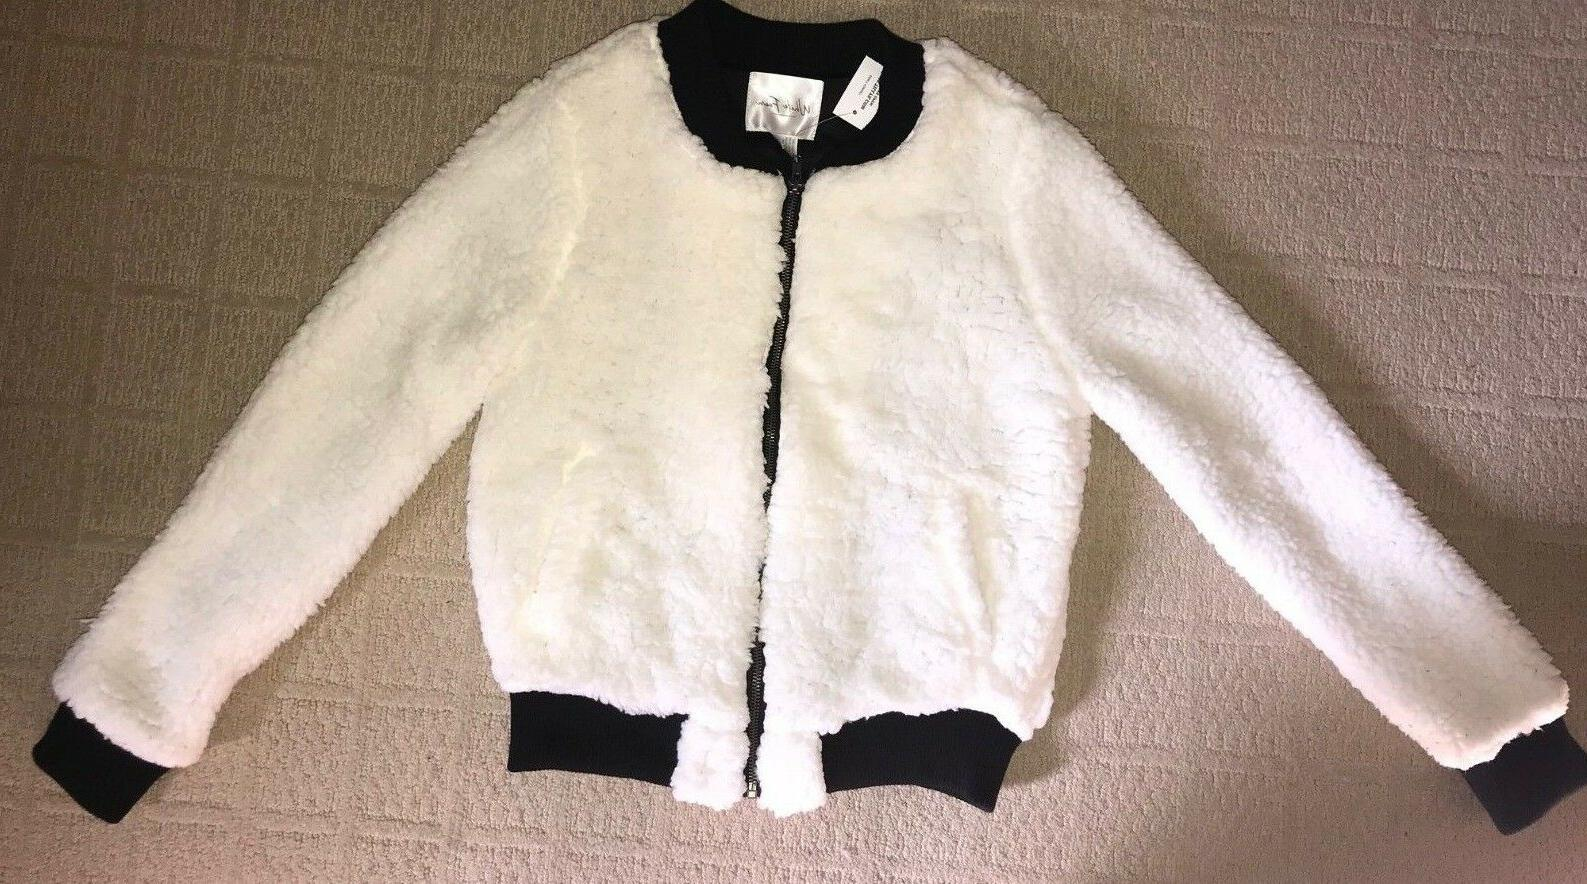 TILLYS WHITE FAWN SM 1 3 MED 5 7 L 9 11 SOFT FAUX LAMB SHERP